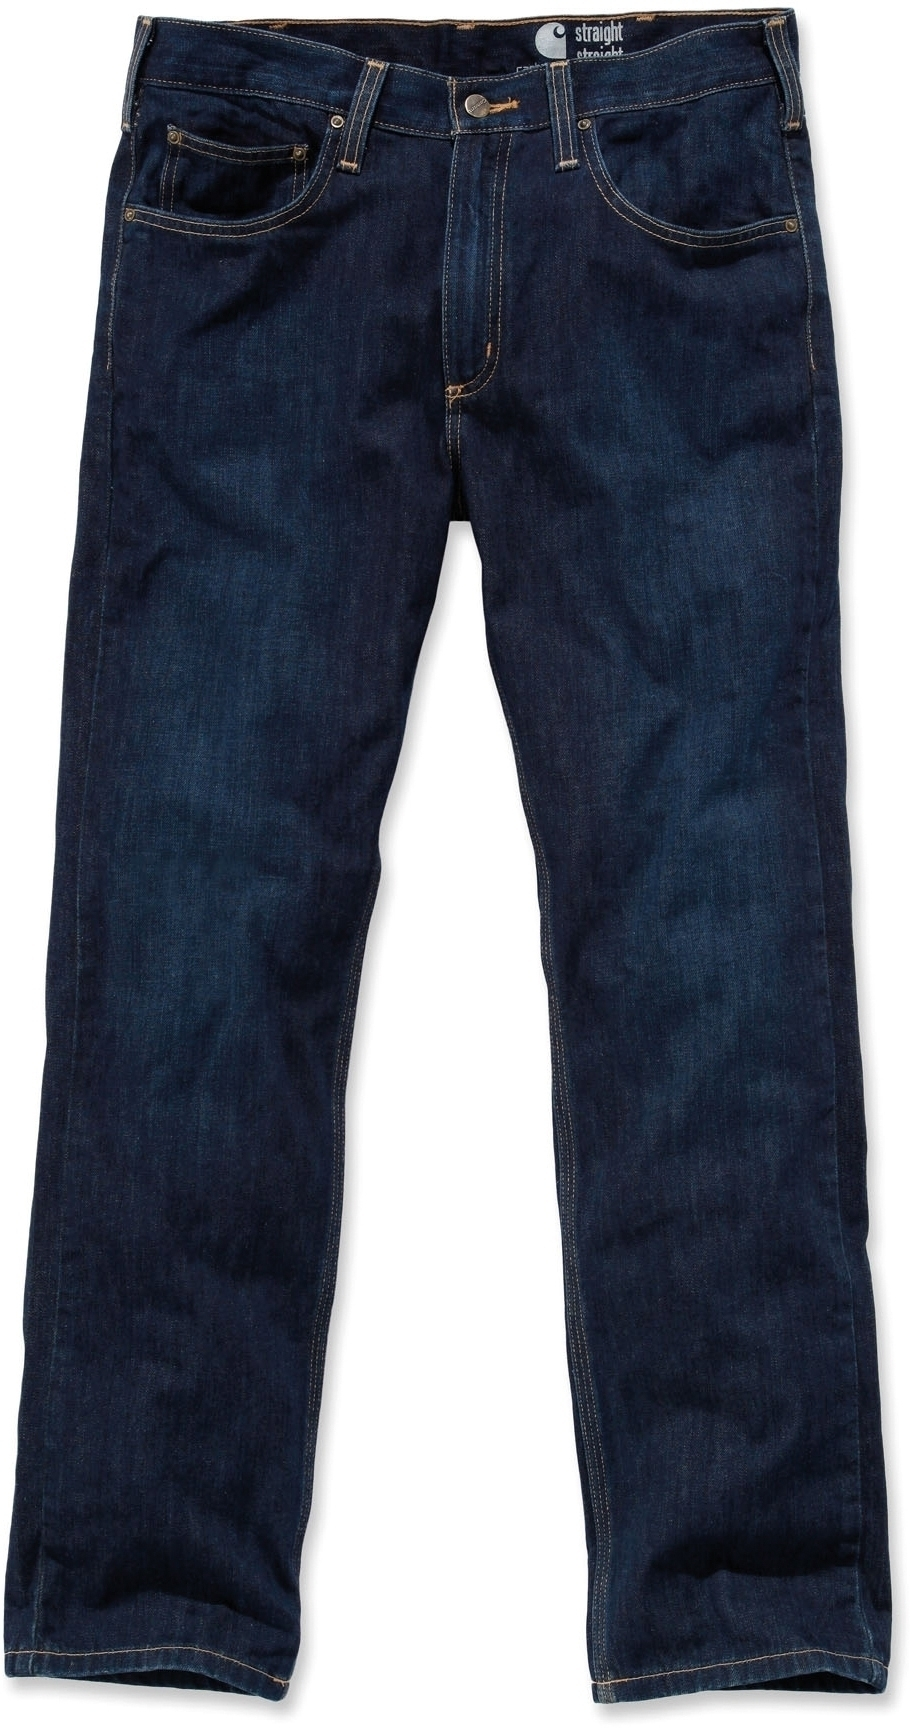 JEAN COUPE DROITE Weathered Indigo Rouge